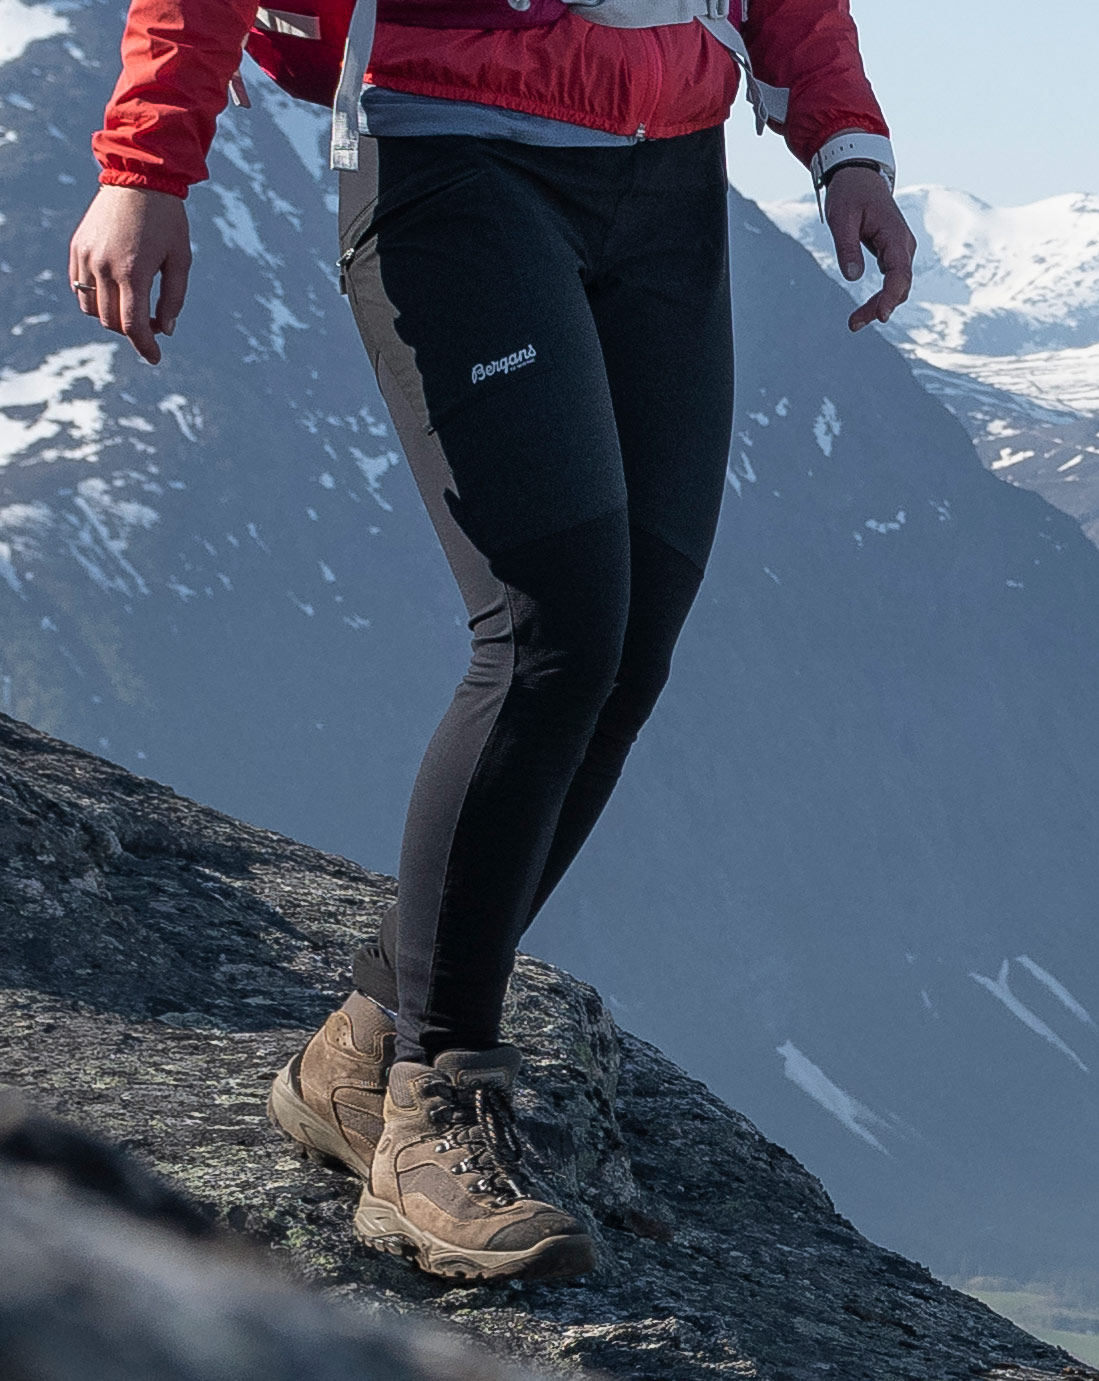 Romsdal Tight W Pants